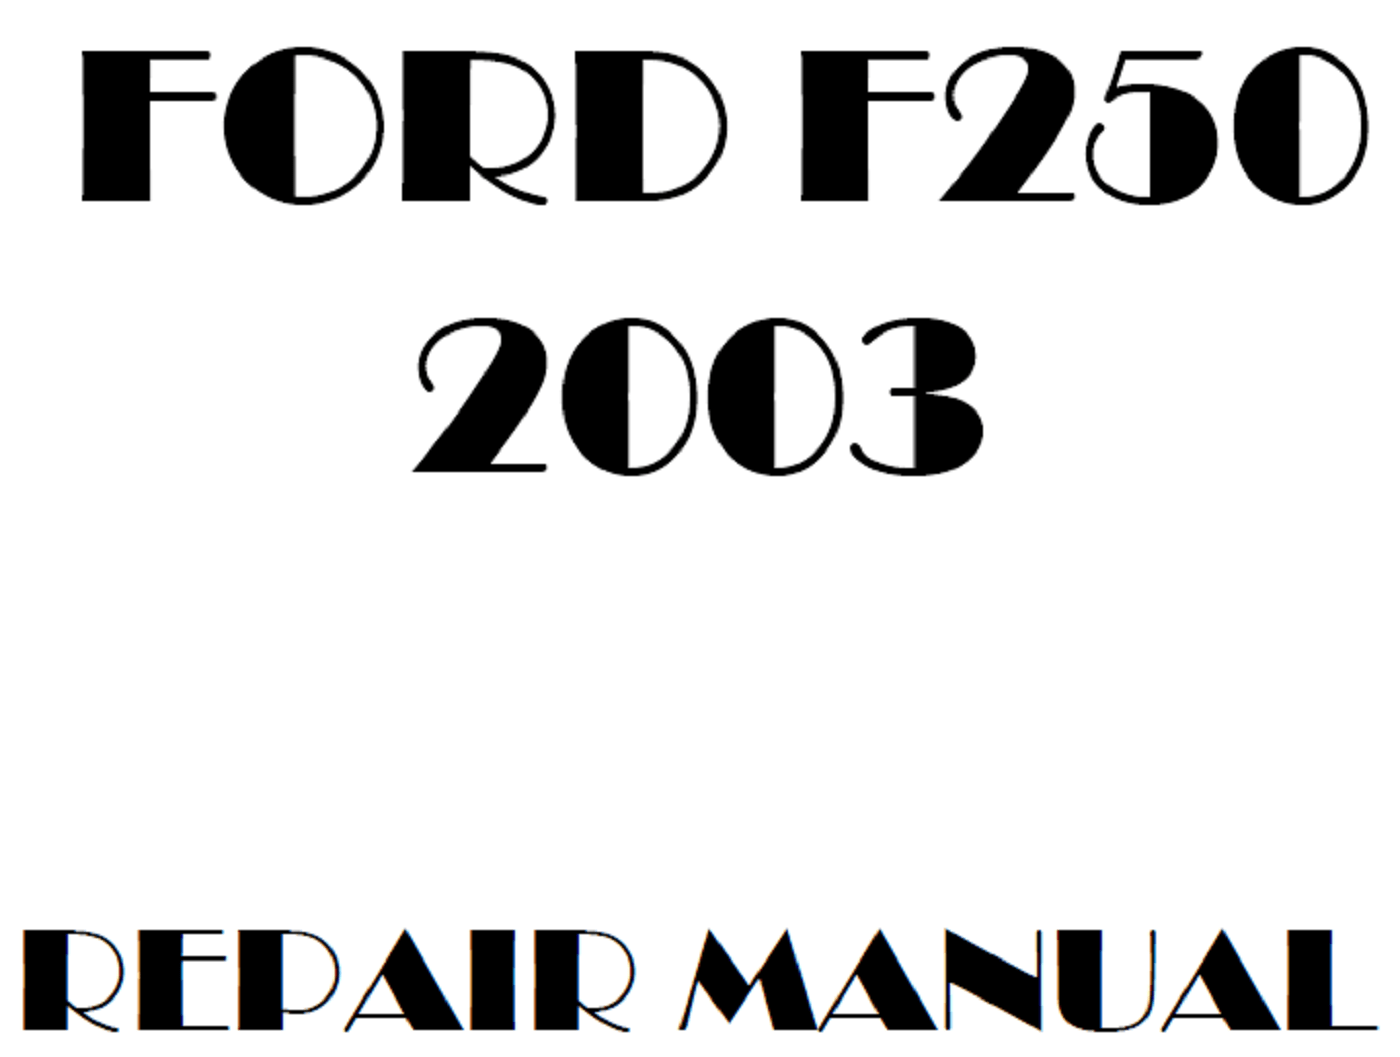 2003 Ford F250 F350 F450 F550 repair manual